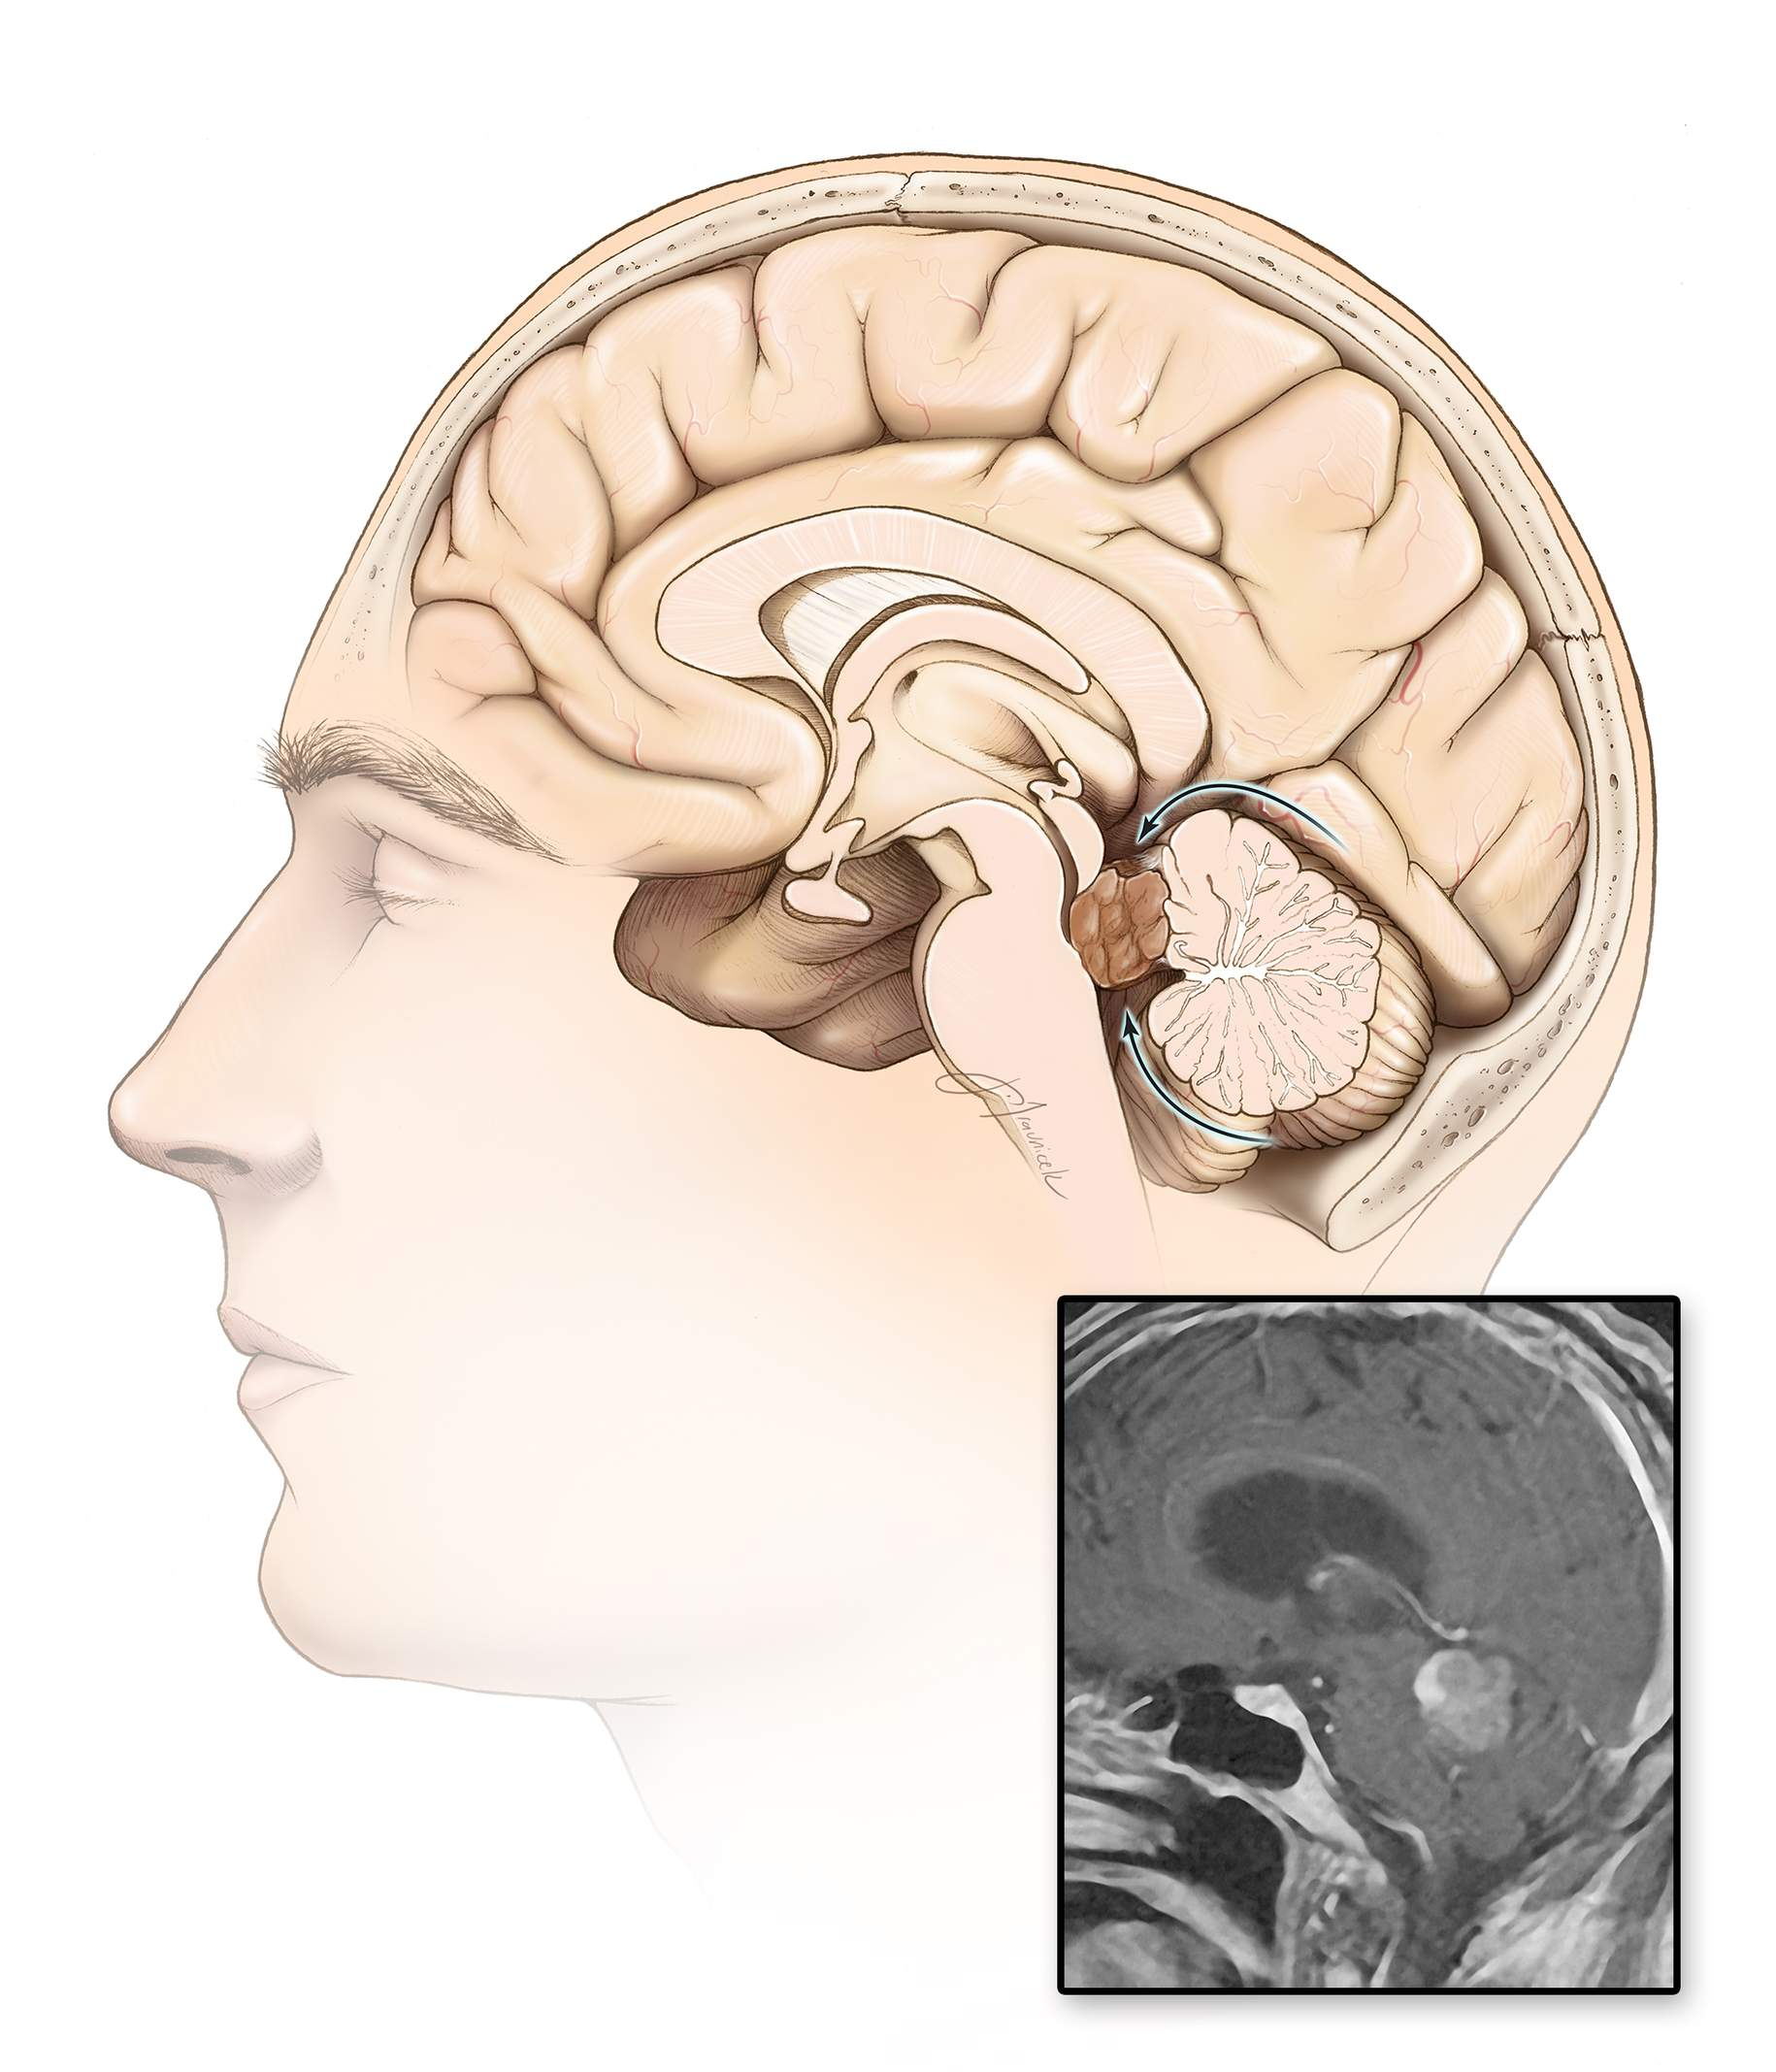 Figure 10: A combined infratentorial-supracerebellar and telovelar approach may be necessary for tumors along the superior fourth ventricle and extending into the pineal region. The supracerebellar route alone is likely to be inadequate to create enough tumor exposure without undesirable retraction on the cerebellum.